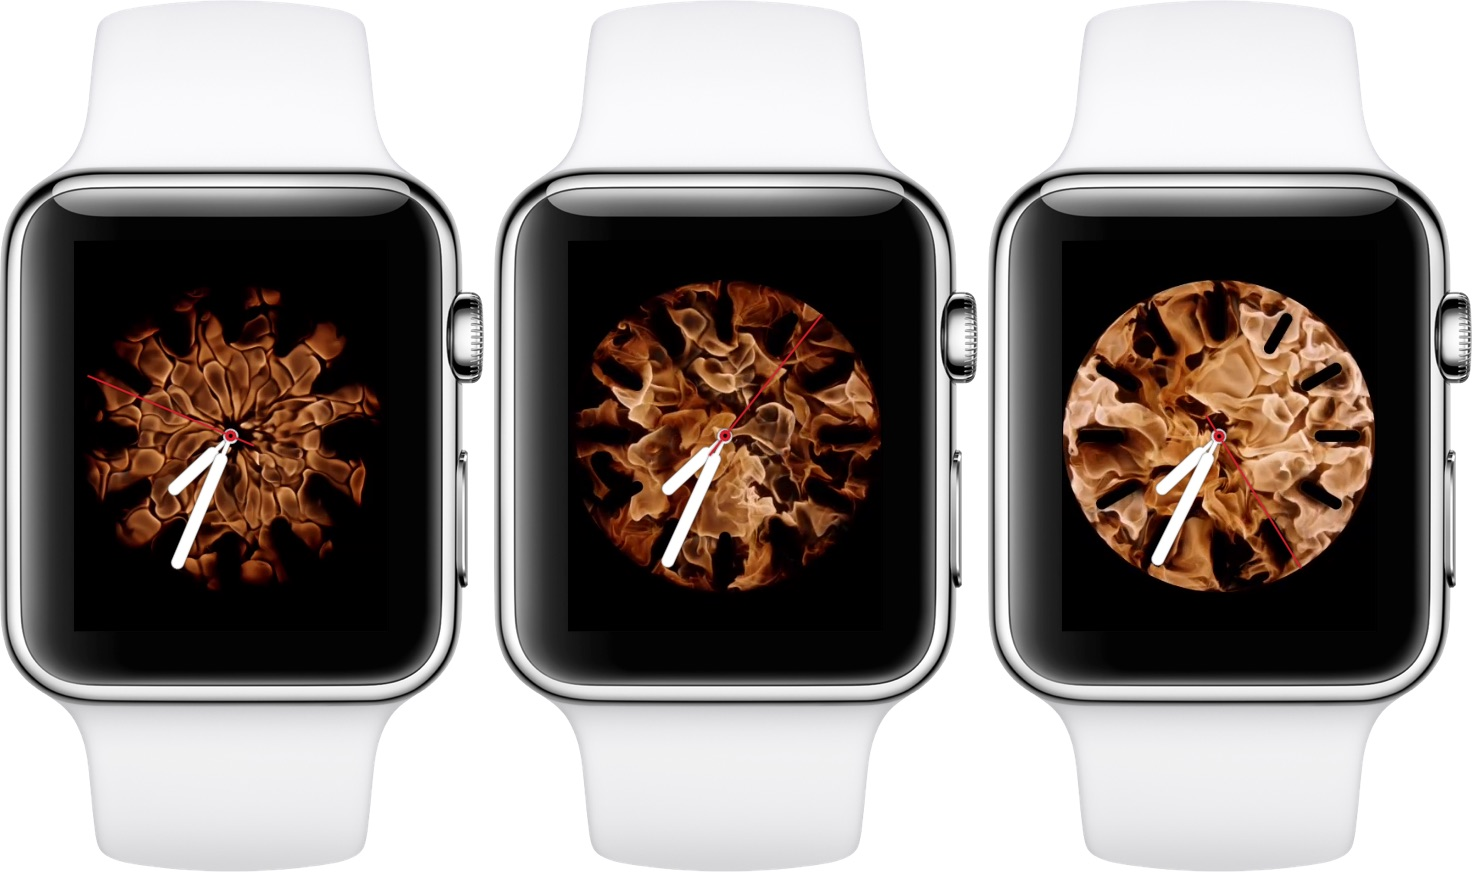 dd5619d1988 All of these watch faces are fully functional and move as you turn your  wrists. On the Apple Watch Series 4